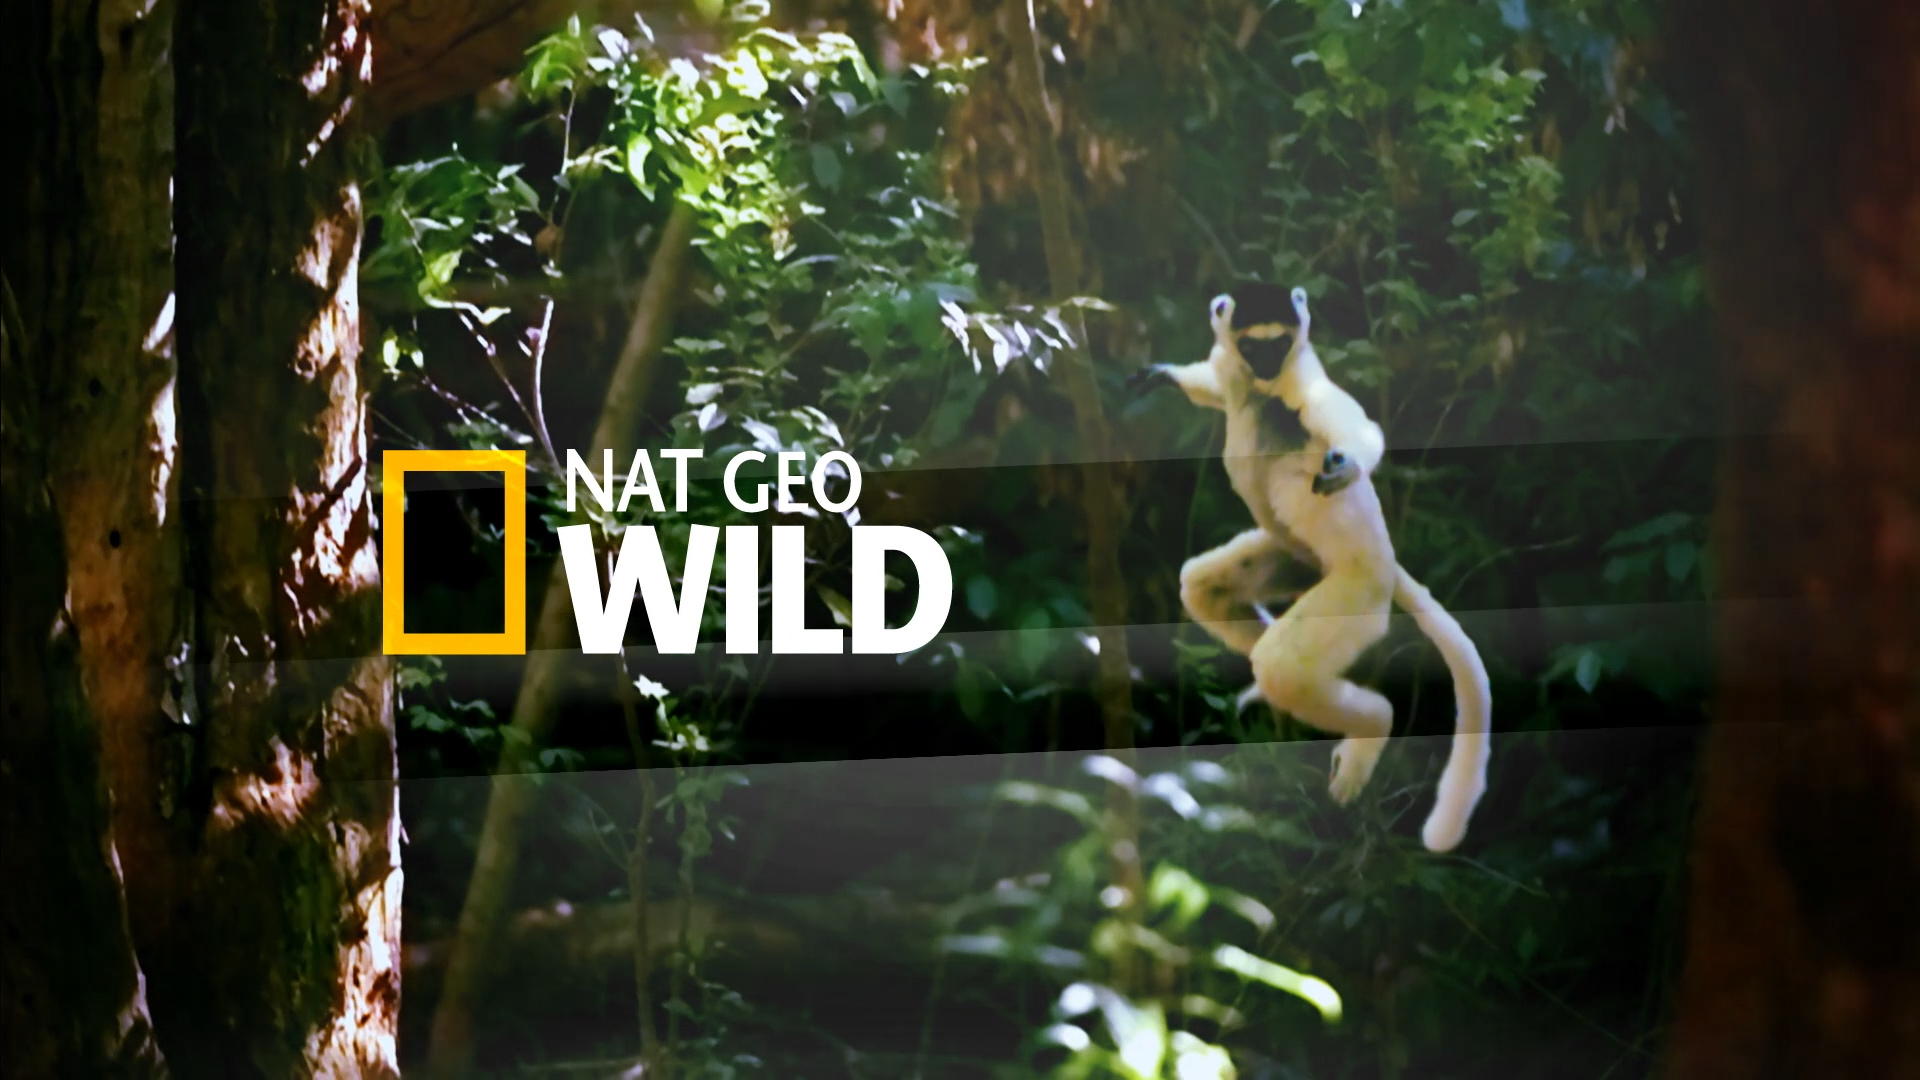 National Geographic Destination Wild